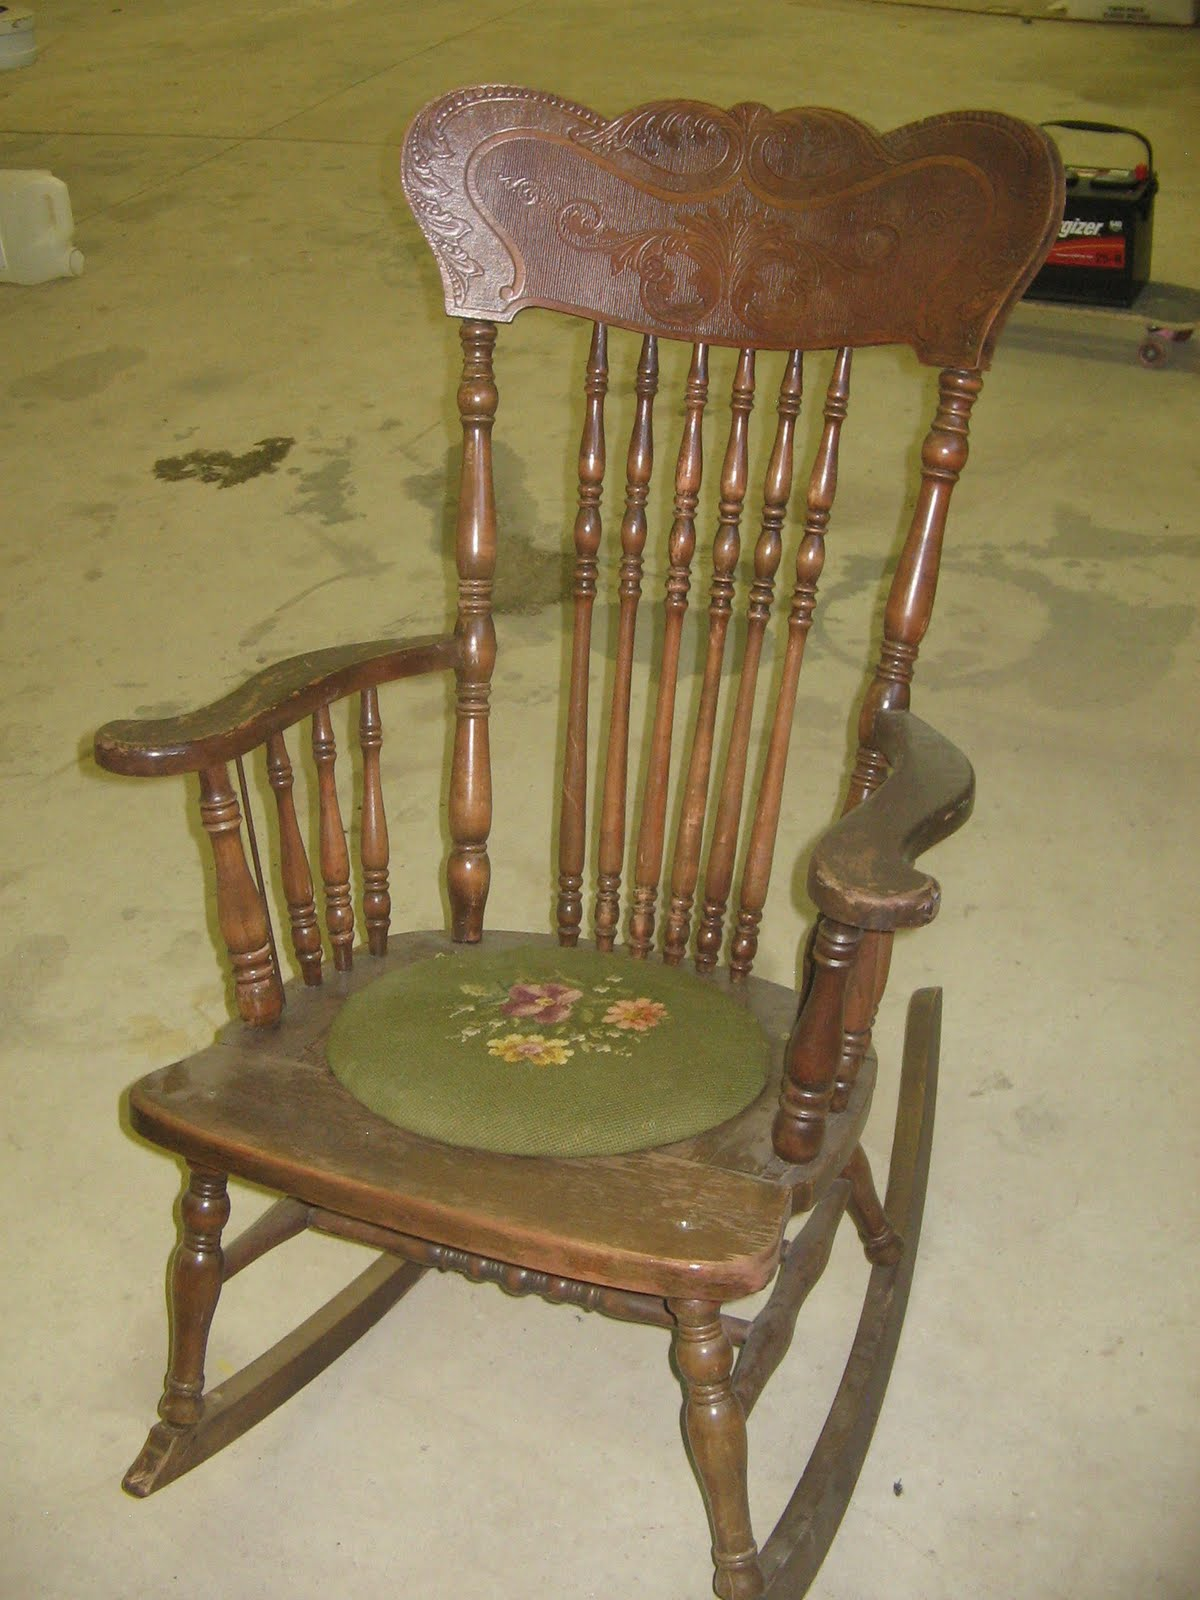 Antique Wooden Rocking Chair - Summer Days: Antique Wooden Rocking Chair